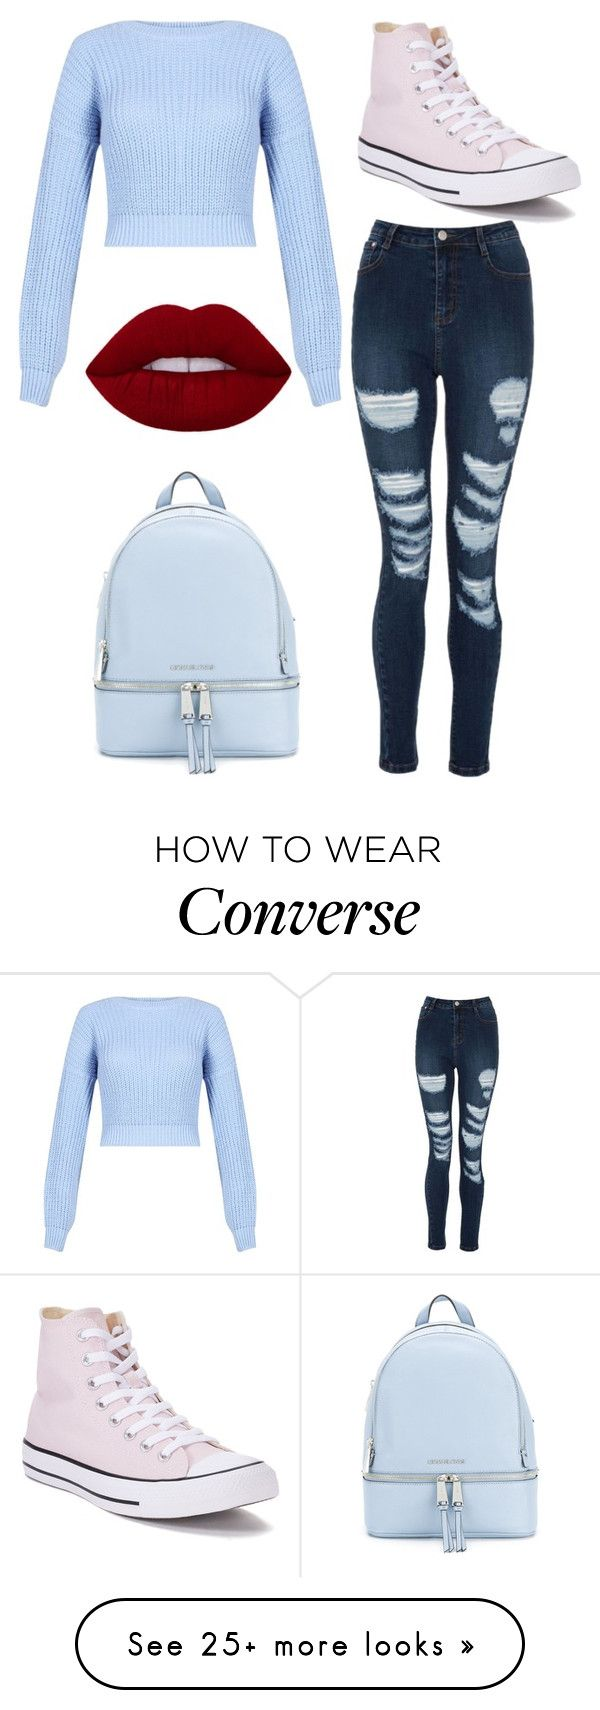 """Untitled #1627"" by aleksova on Polyvore featuring Converse and MICHAEL Michael Kors"